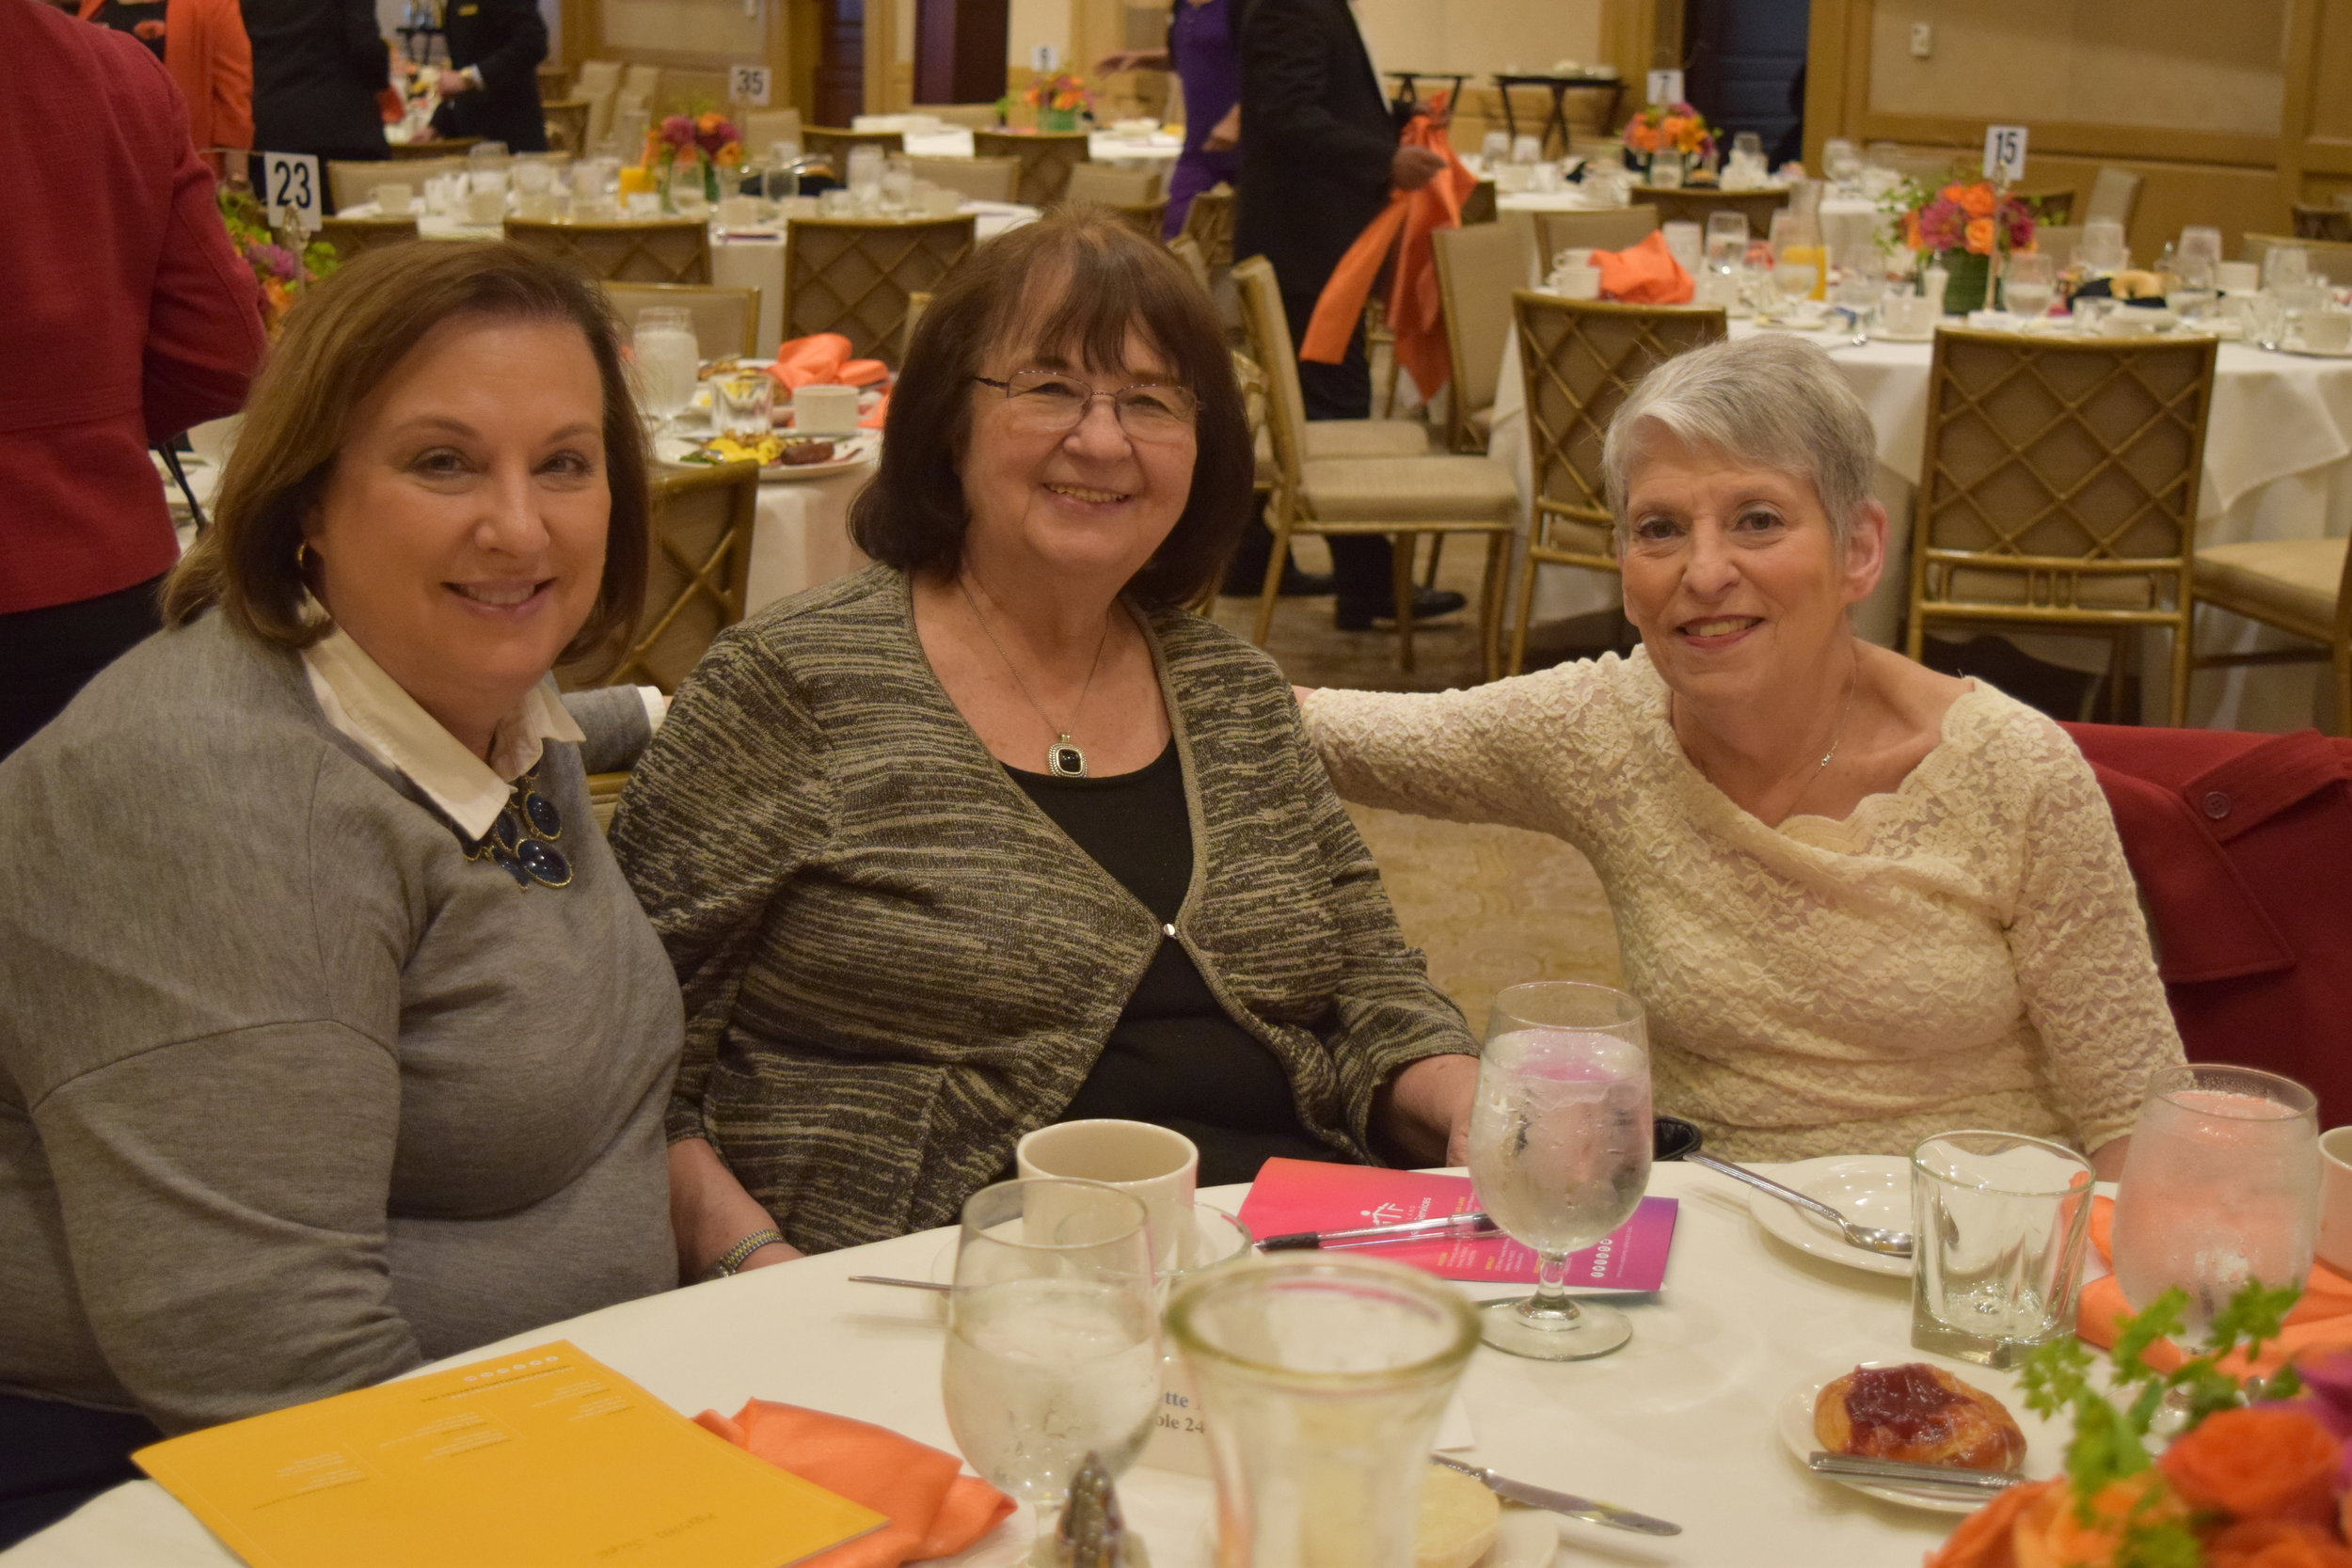 Attending the breakfast were Charlotte Paul, Catherine Marchione and Beverly Landau.